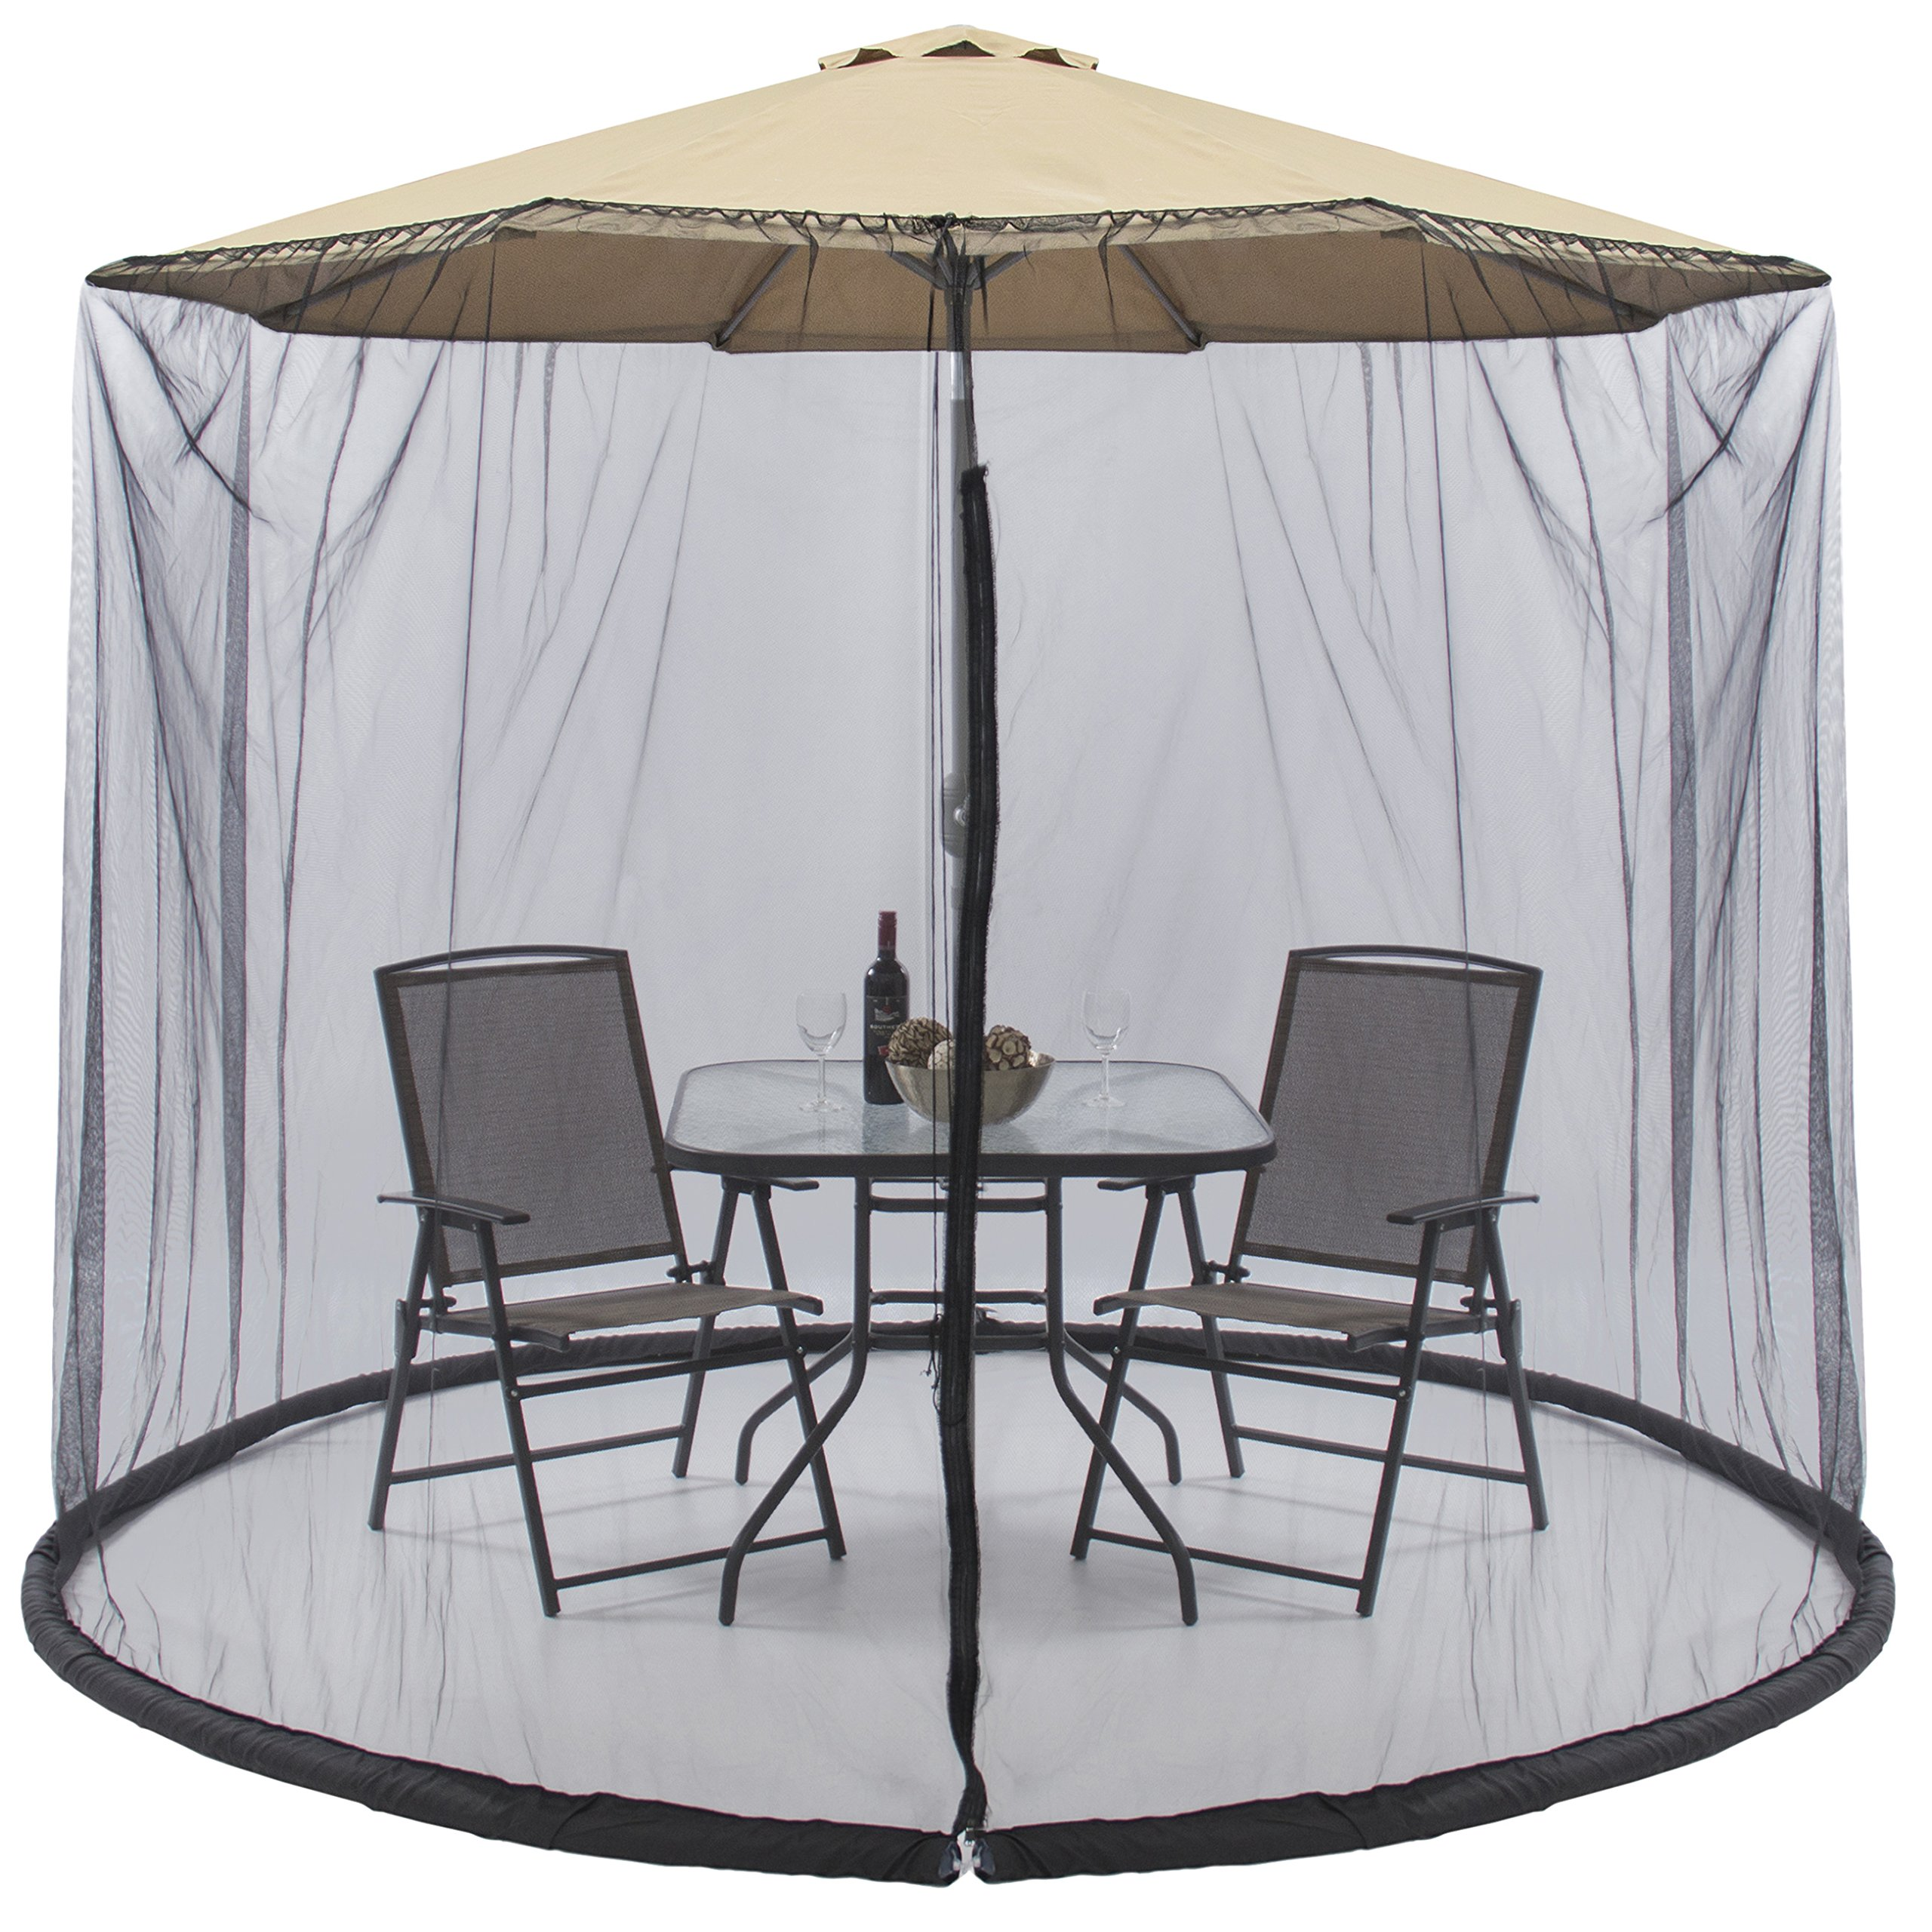 Best Choice Products Outdoor 9-Foot Patio Umbrella Bug Screen w/Zipper Door and Polyester Netting, Black by Best Choice Products